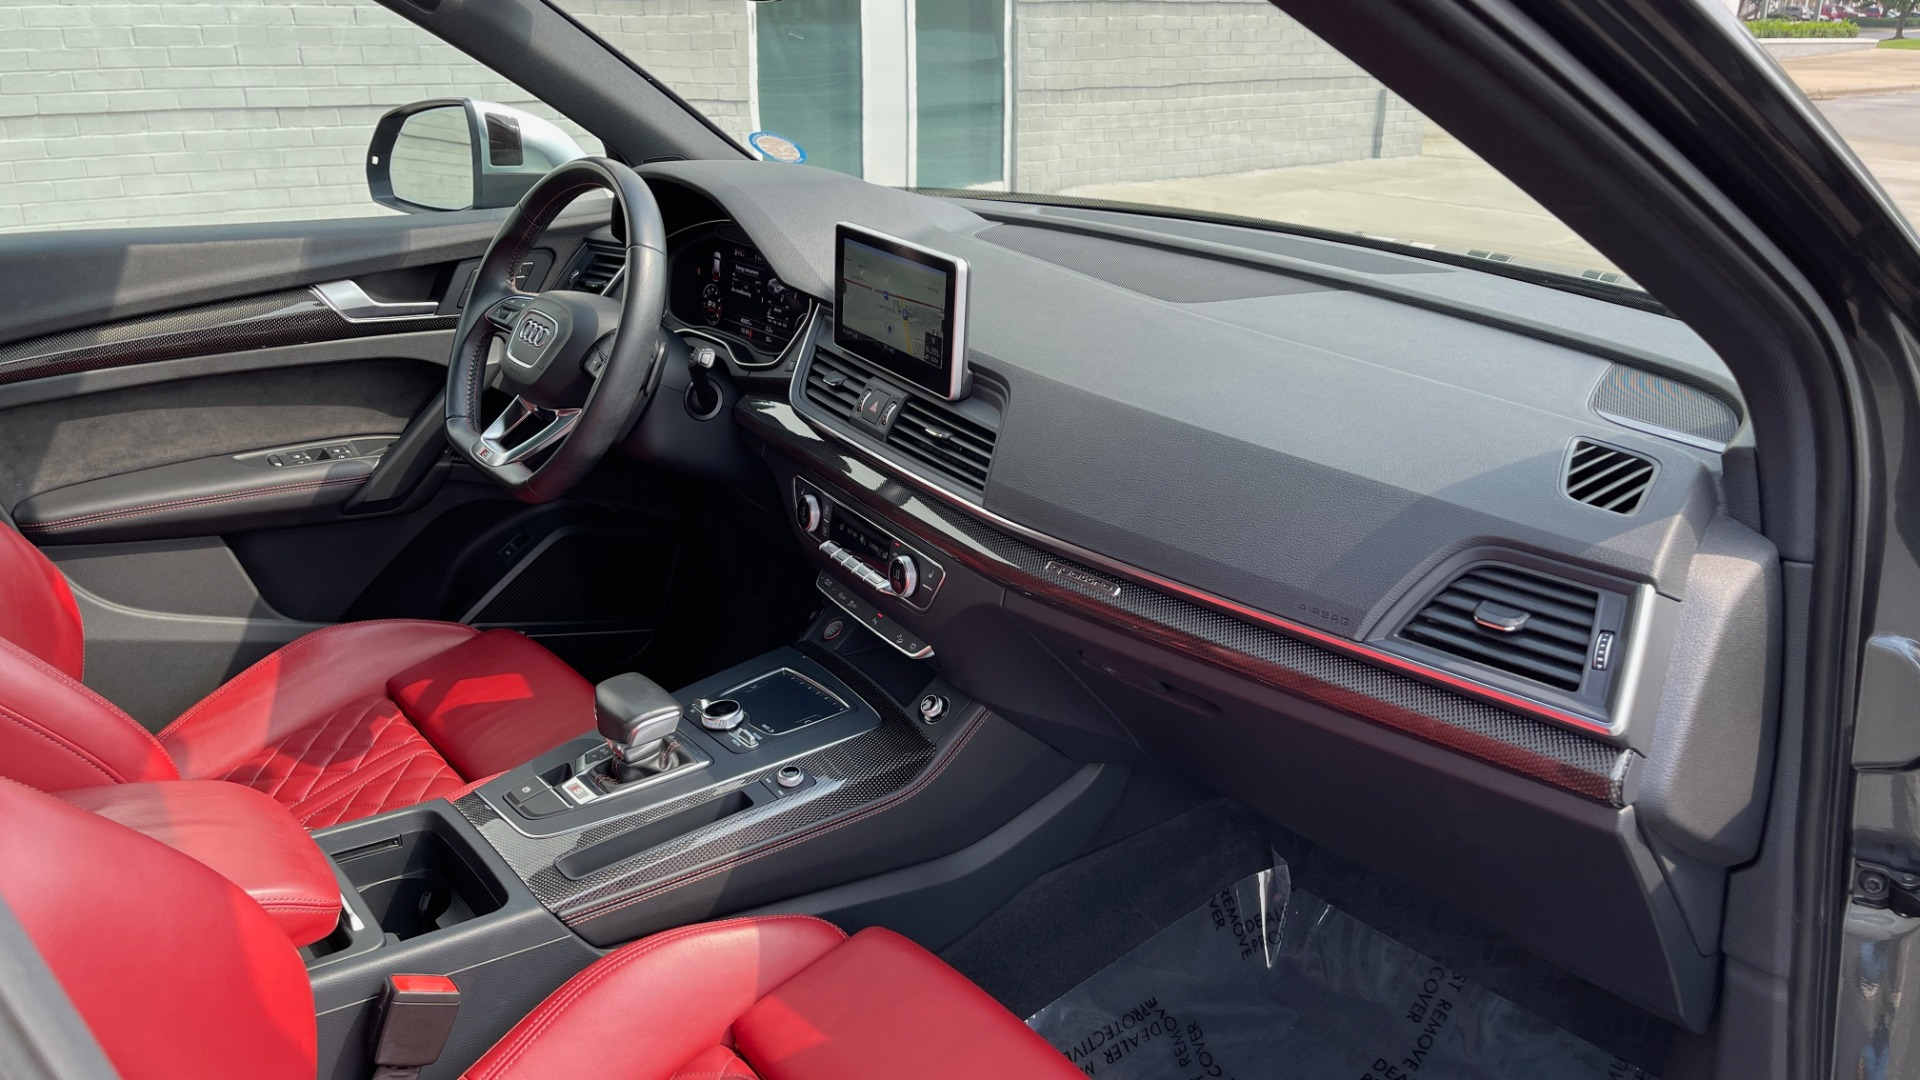 Used 2018 Audi SQ5 PREMIUM PLUS / S-SPORT / NAV / B&O SND / SUNROOF / REARVIEW for sale $43,995 at Formula Imports in Charlotte NC 28227 75